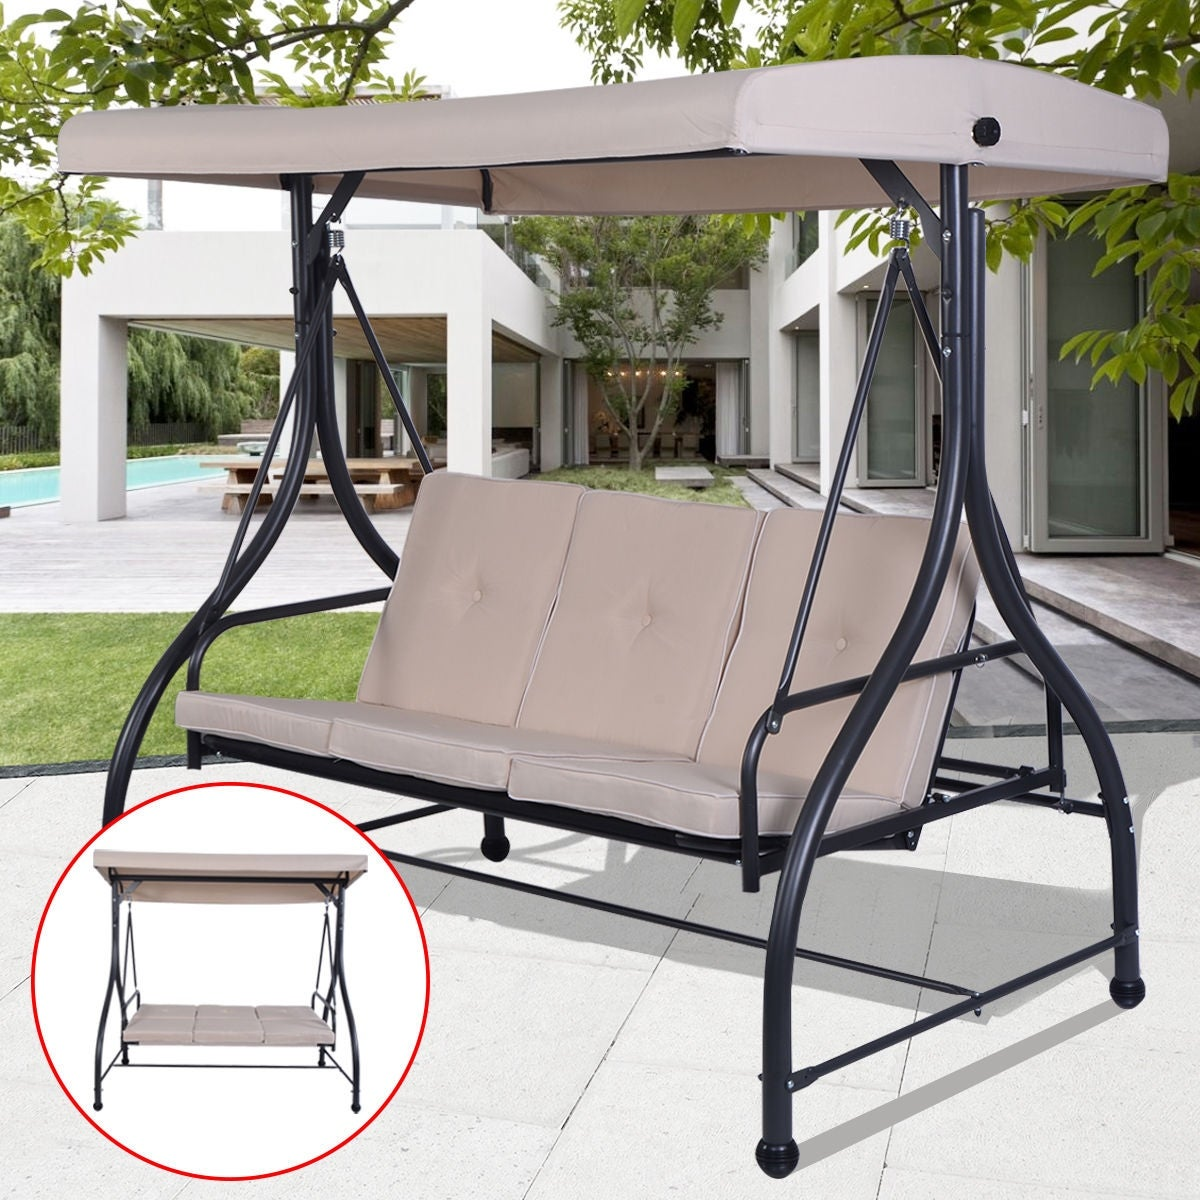 chair bench buy hanging cup products porch hive swing buyhive courtyard holder deck wood patio w